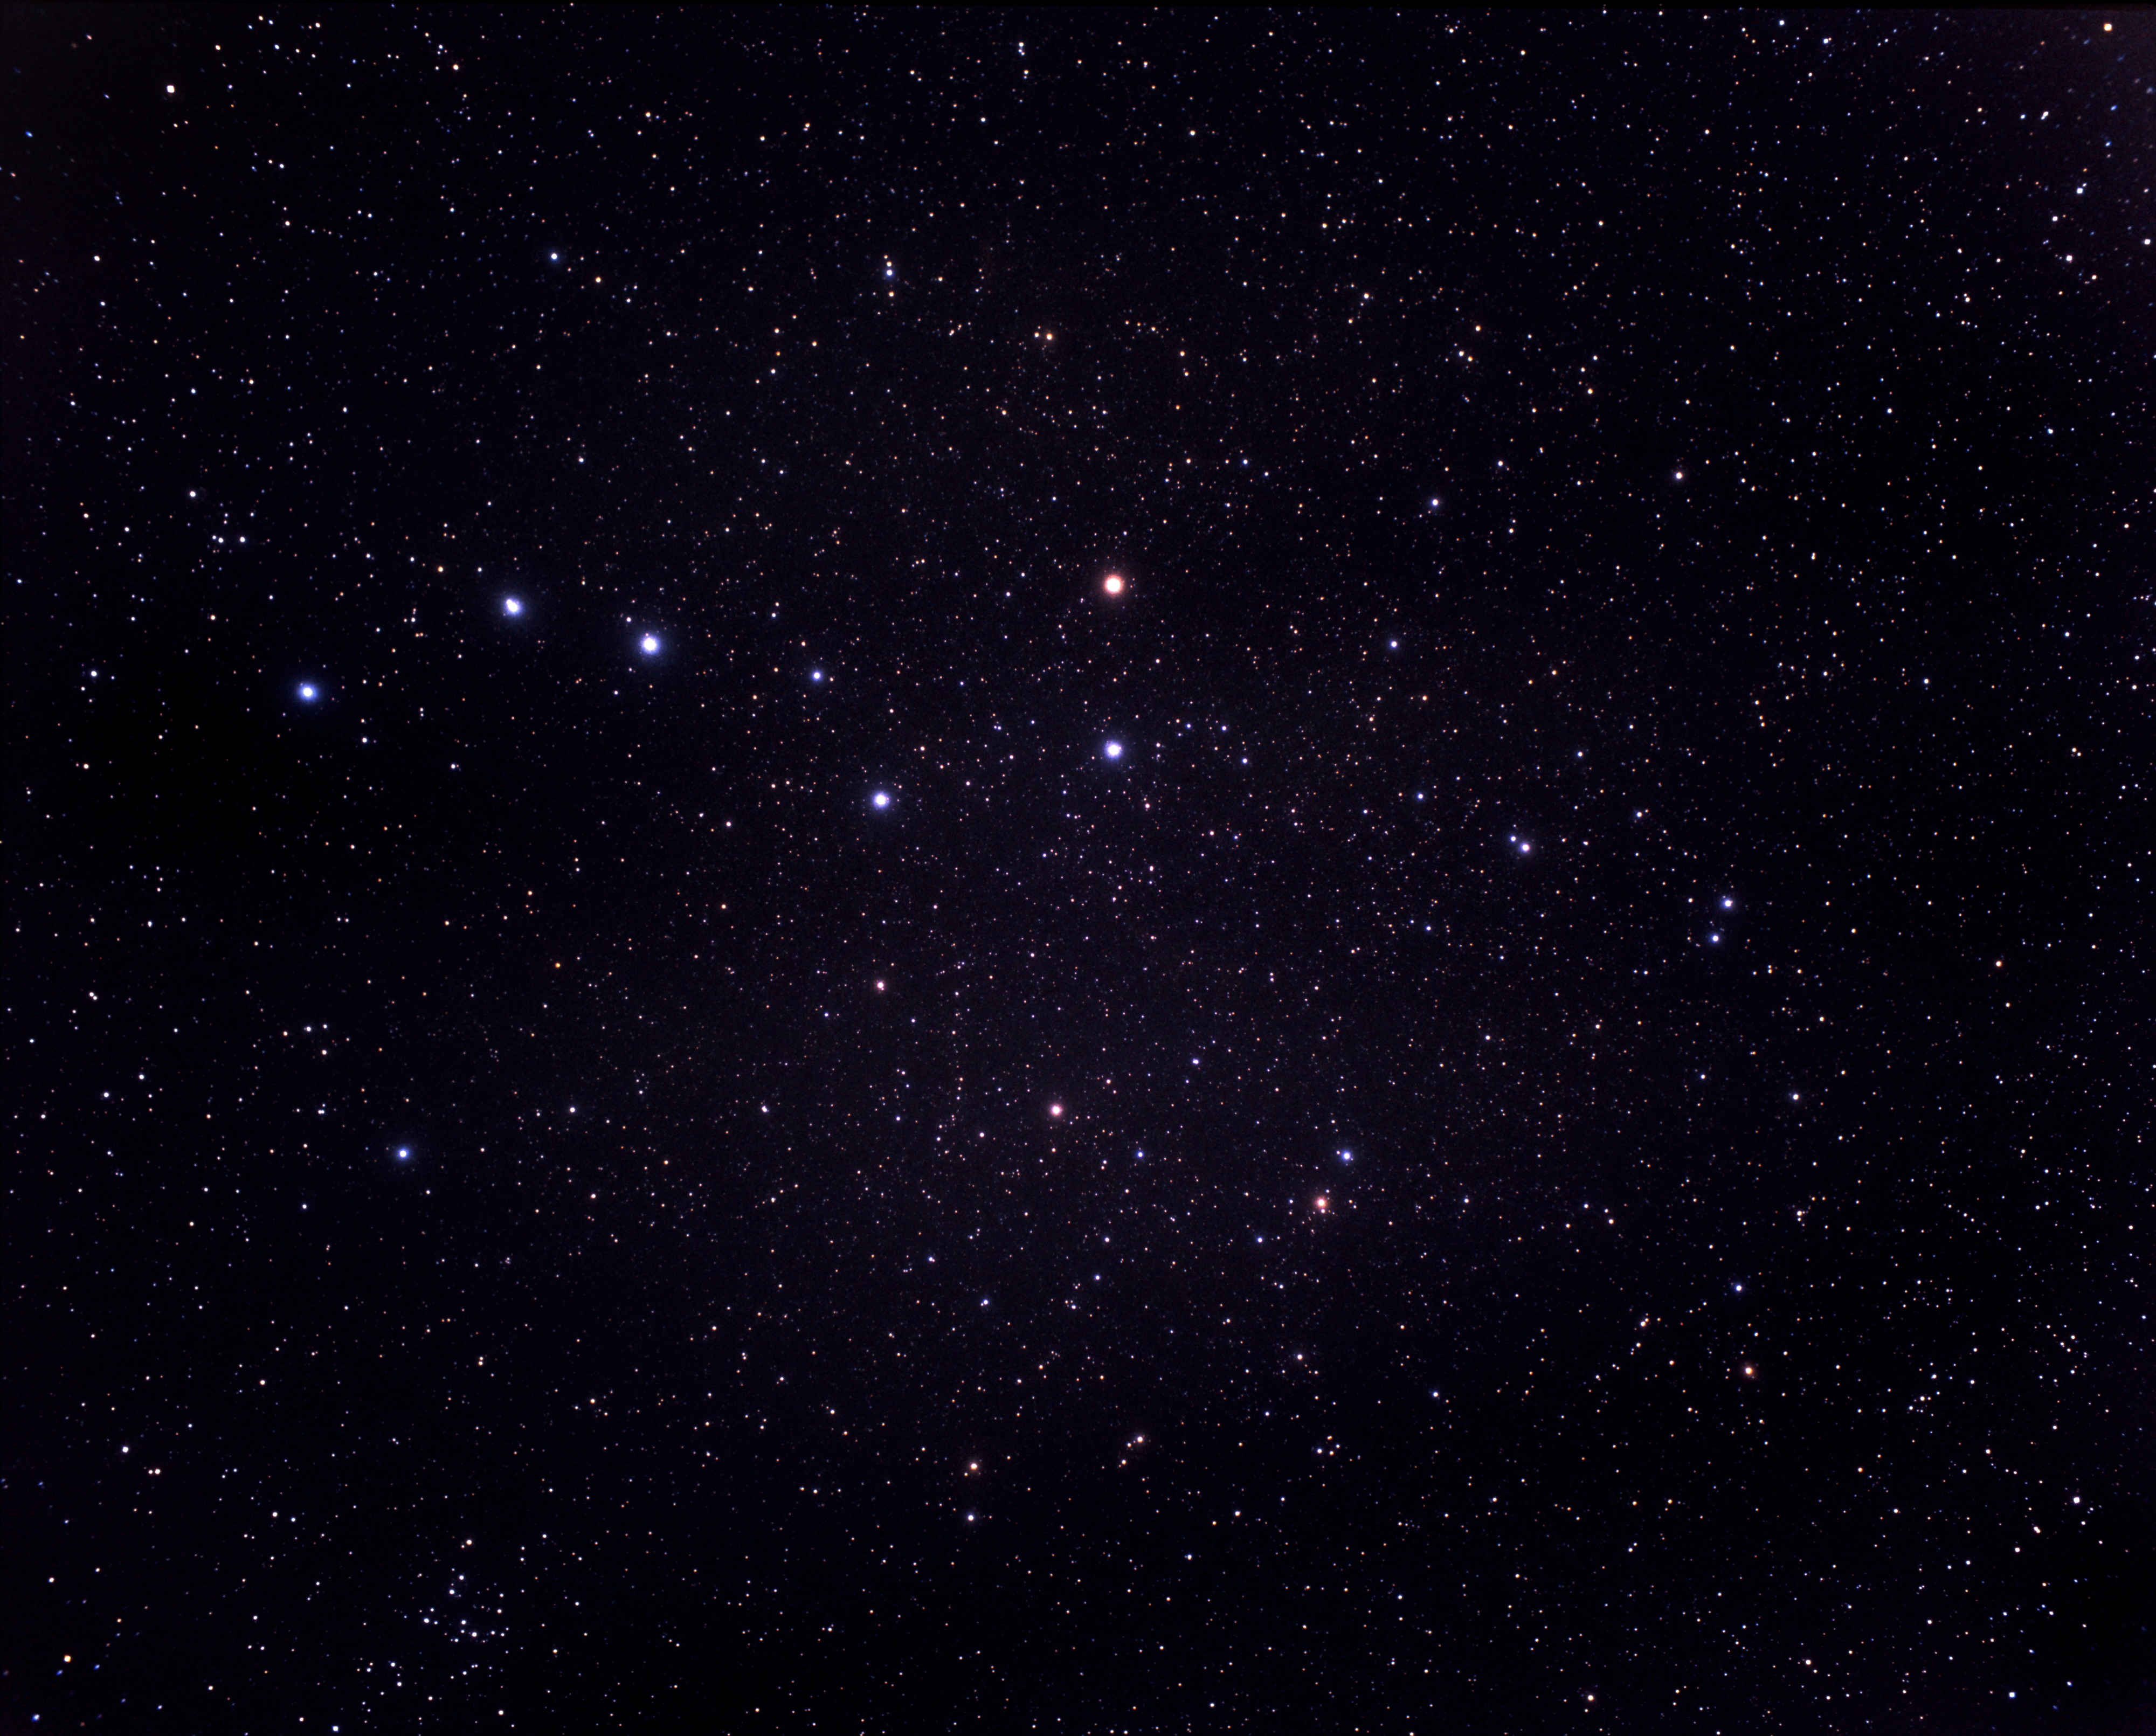 Animated Snow Falling Wallpaper Free Download A Very Wide Field View Of The Constellations Of Ursa Major